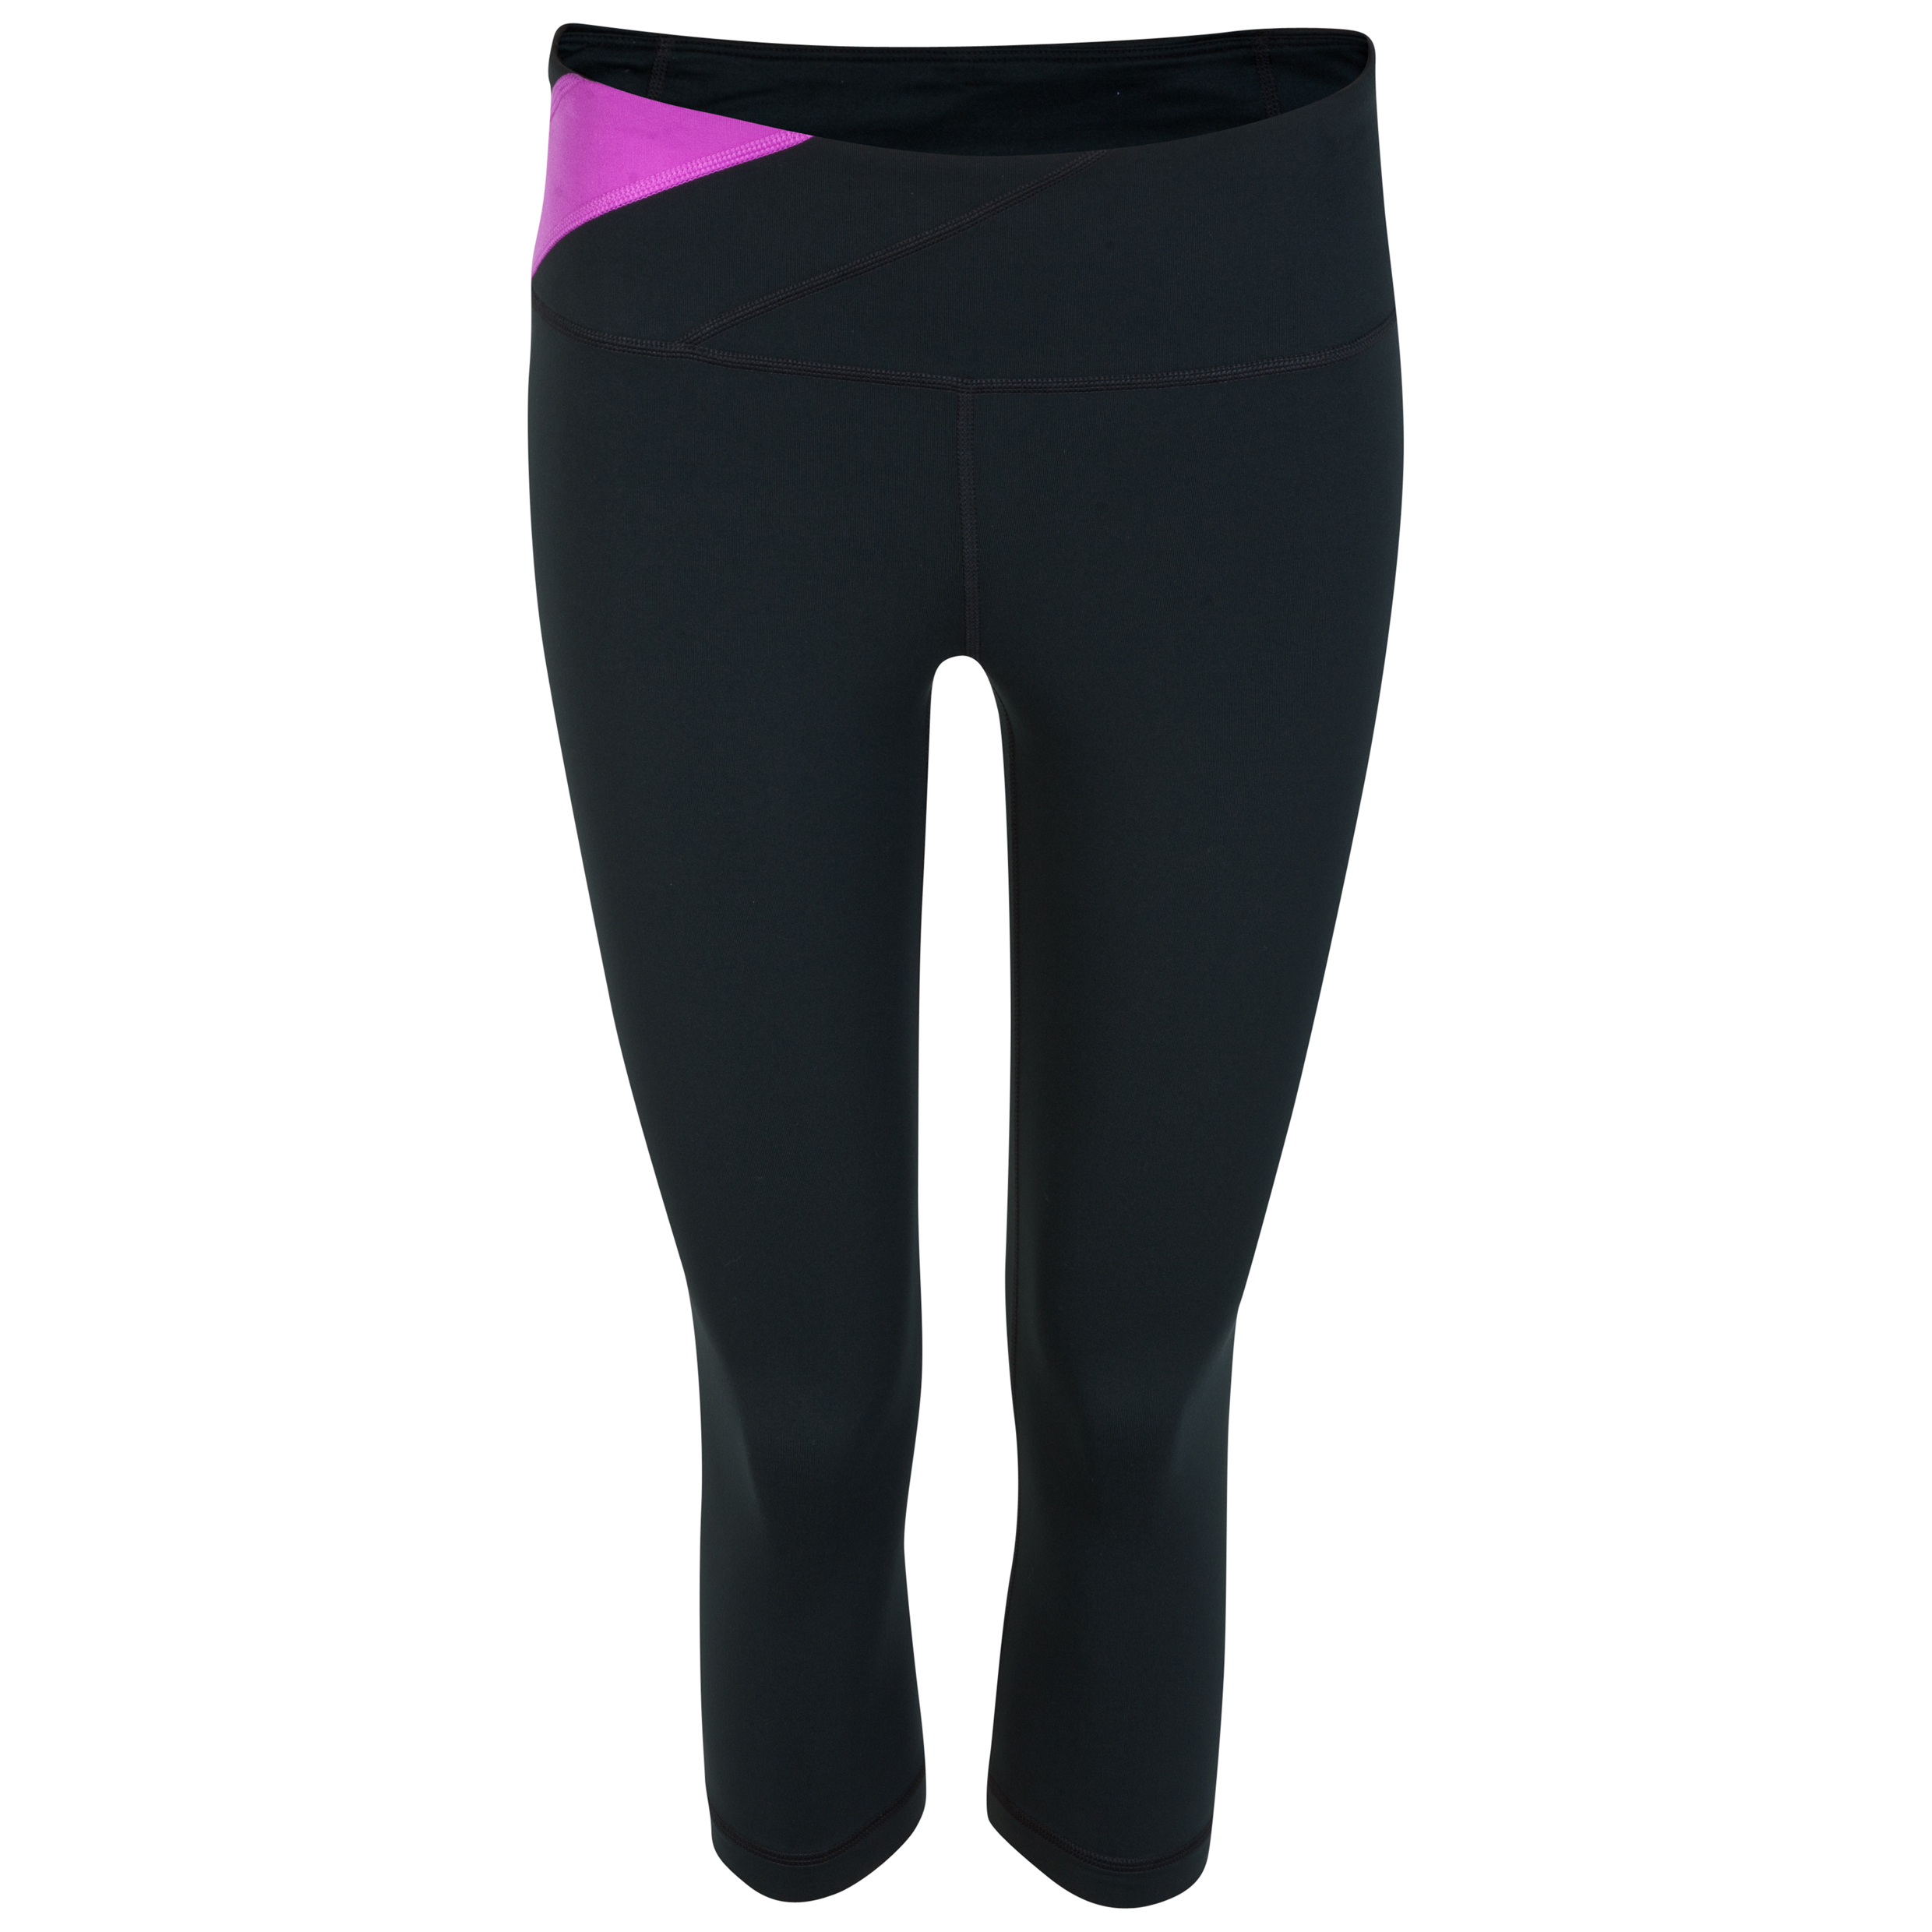 Lifestyle Perfect Tight Capri Black